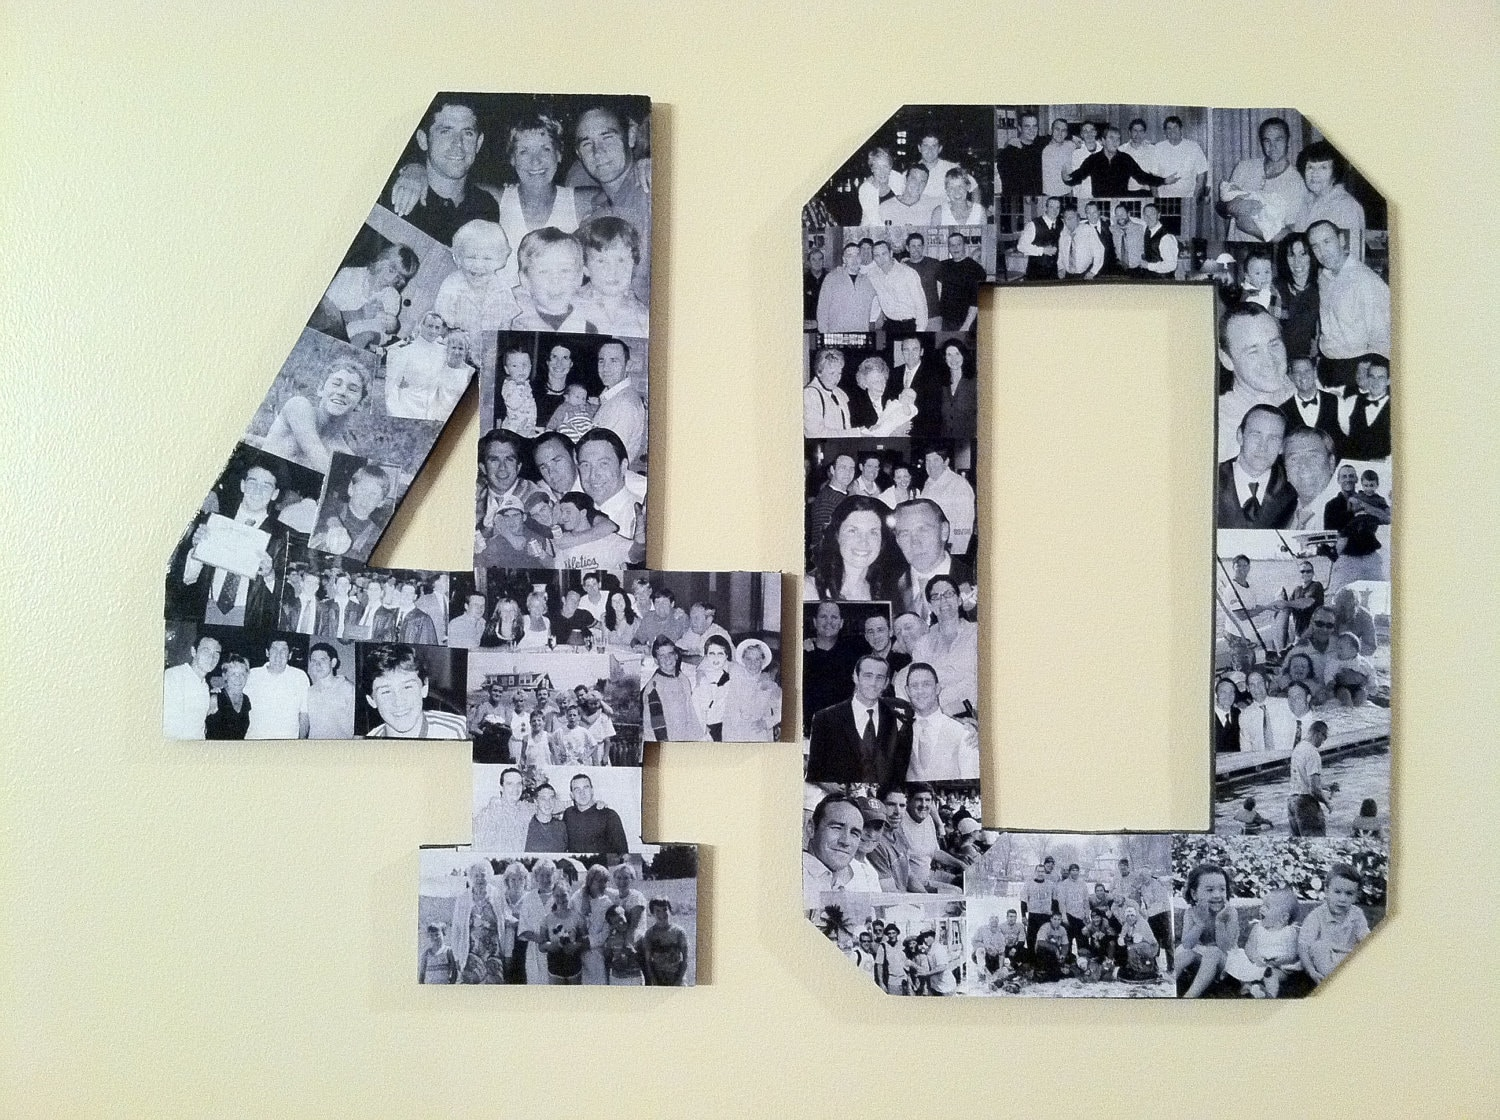 40th birthday ideas 40th birthday video montage ideas for 40th anniversary decoration ideas